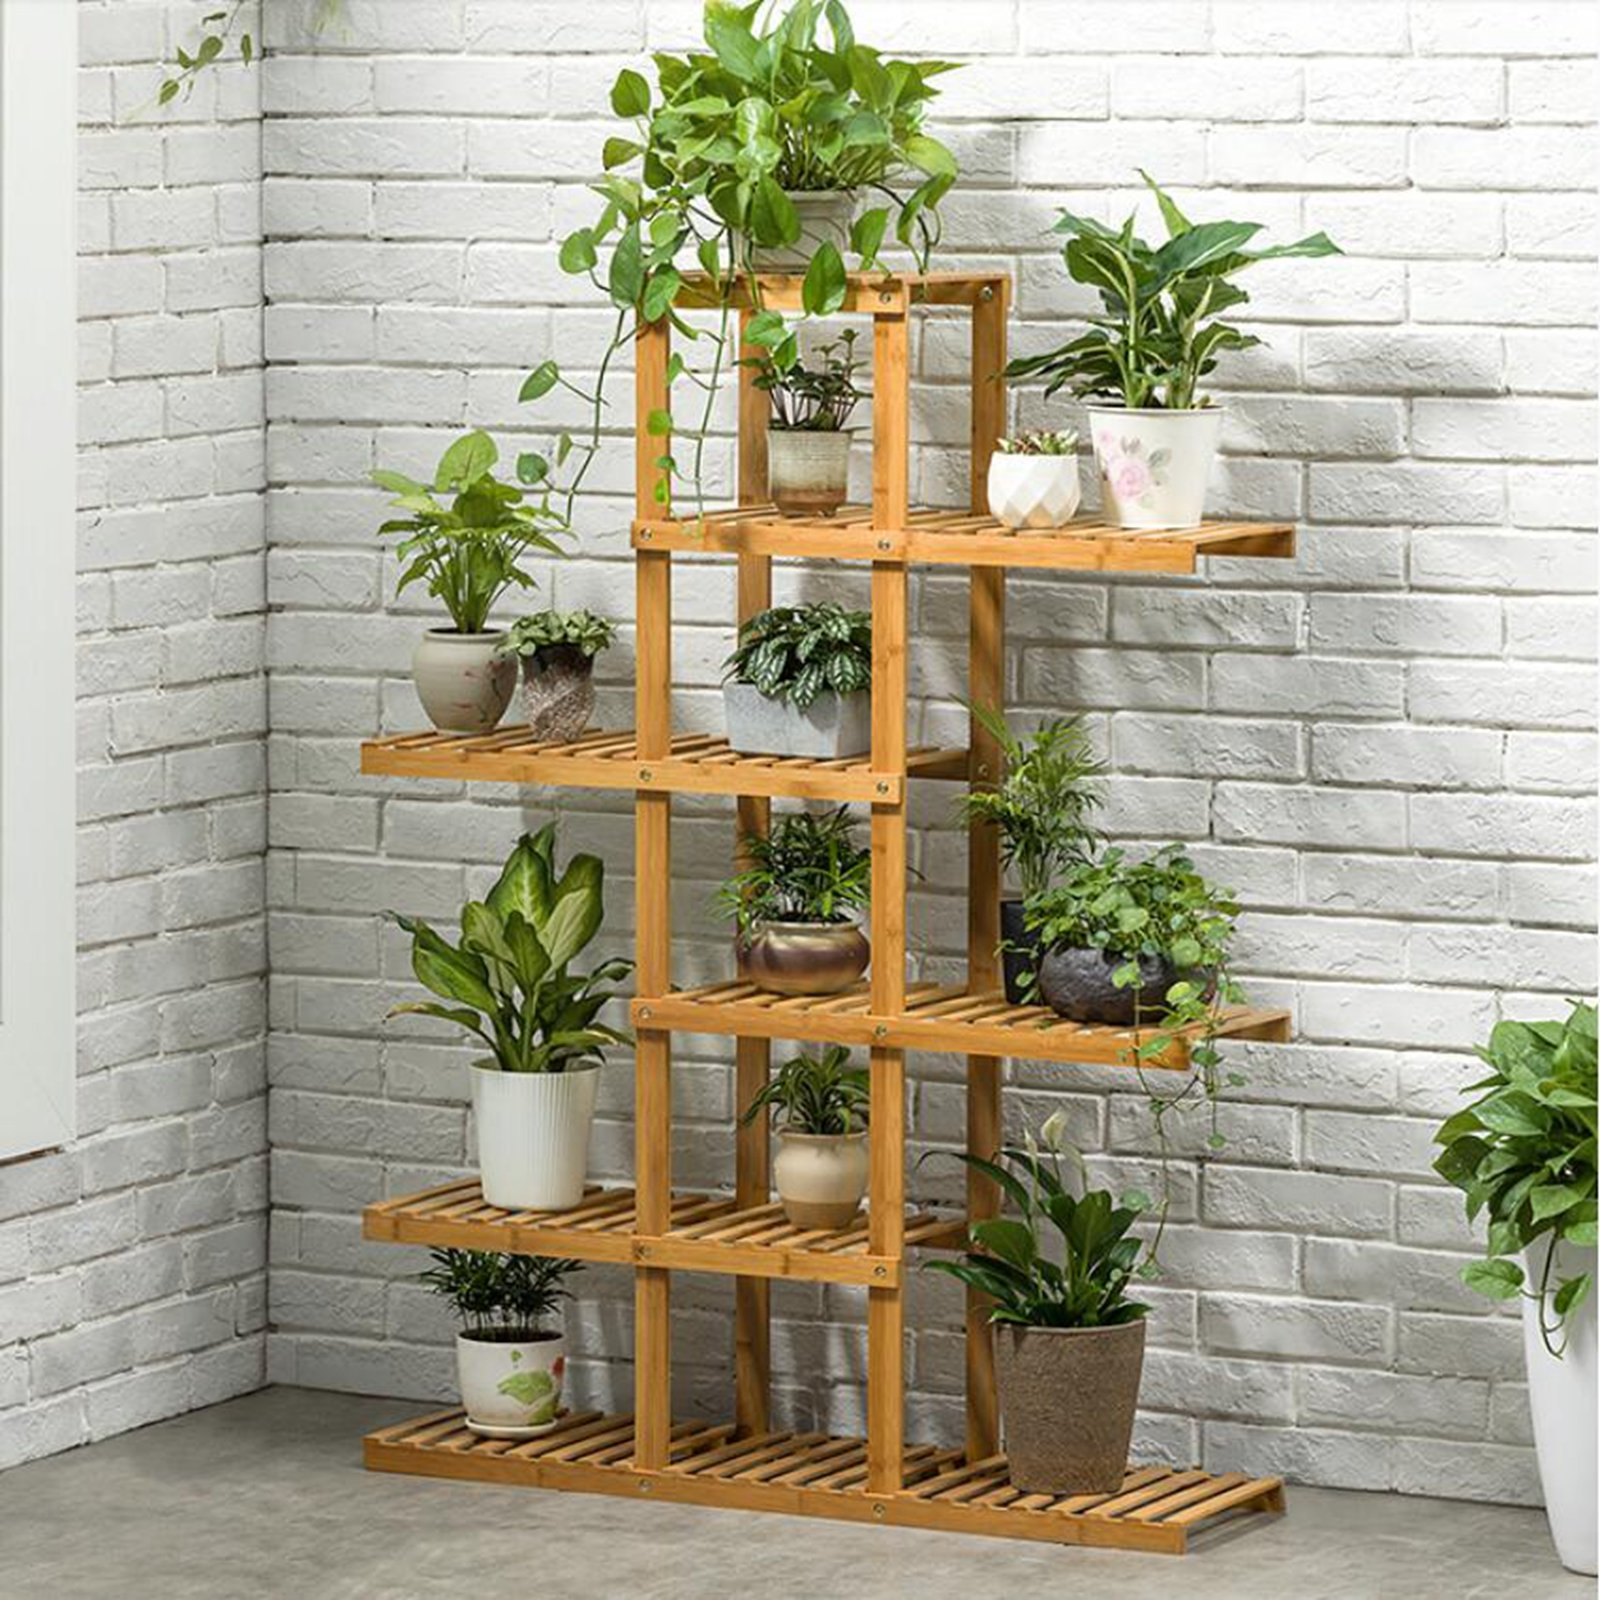 Magshion Wooden Flower Stands Plant Display Rack Choose 3 4 5 6 Shelf (6 Shelf) by Magshion